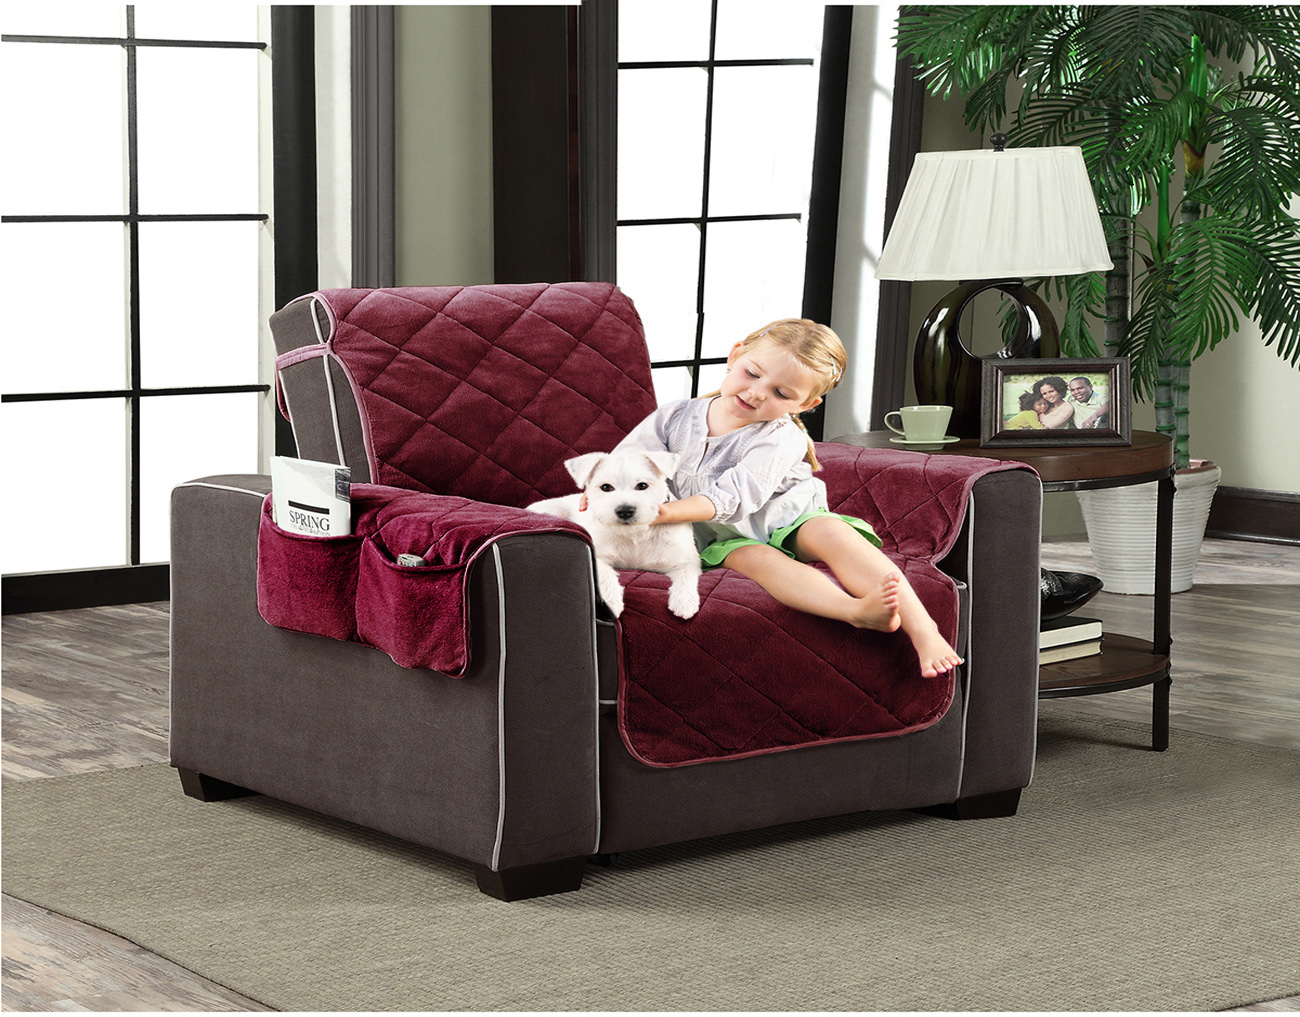 82 microfiber couch protector